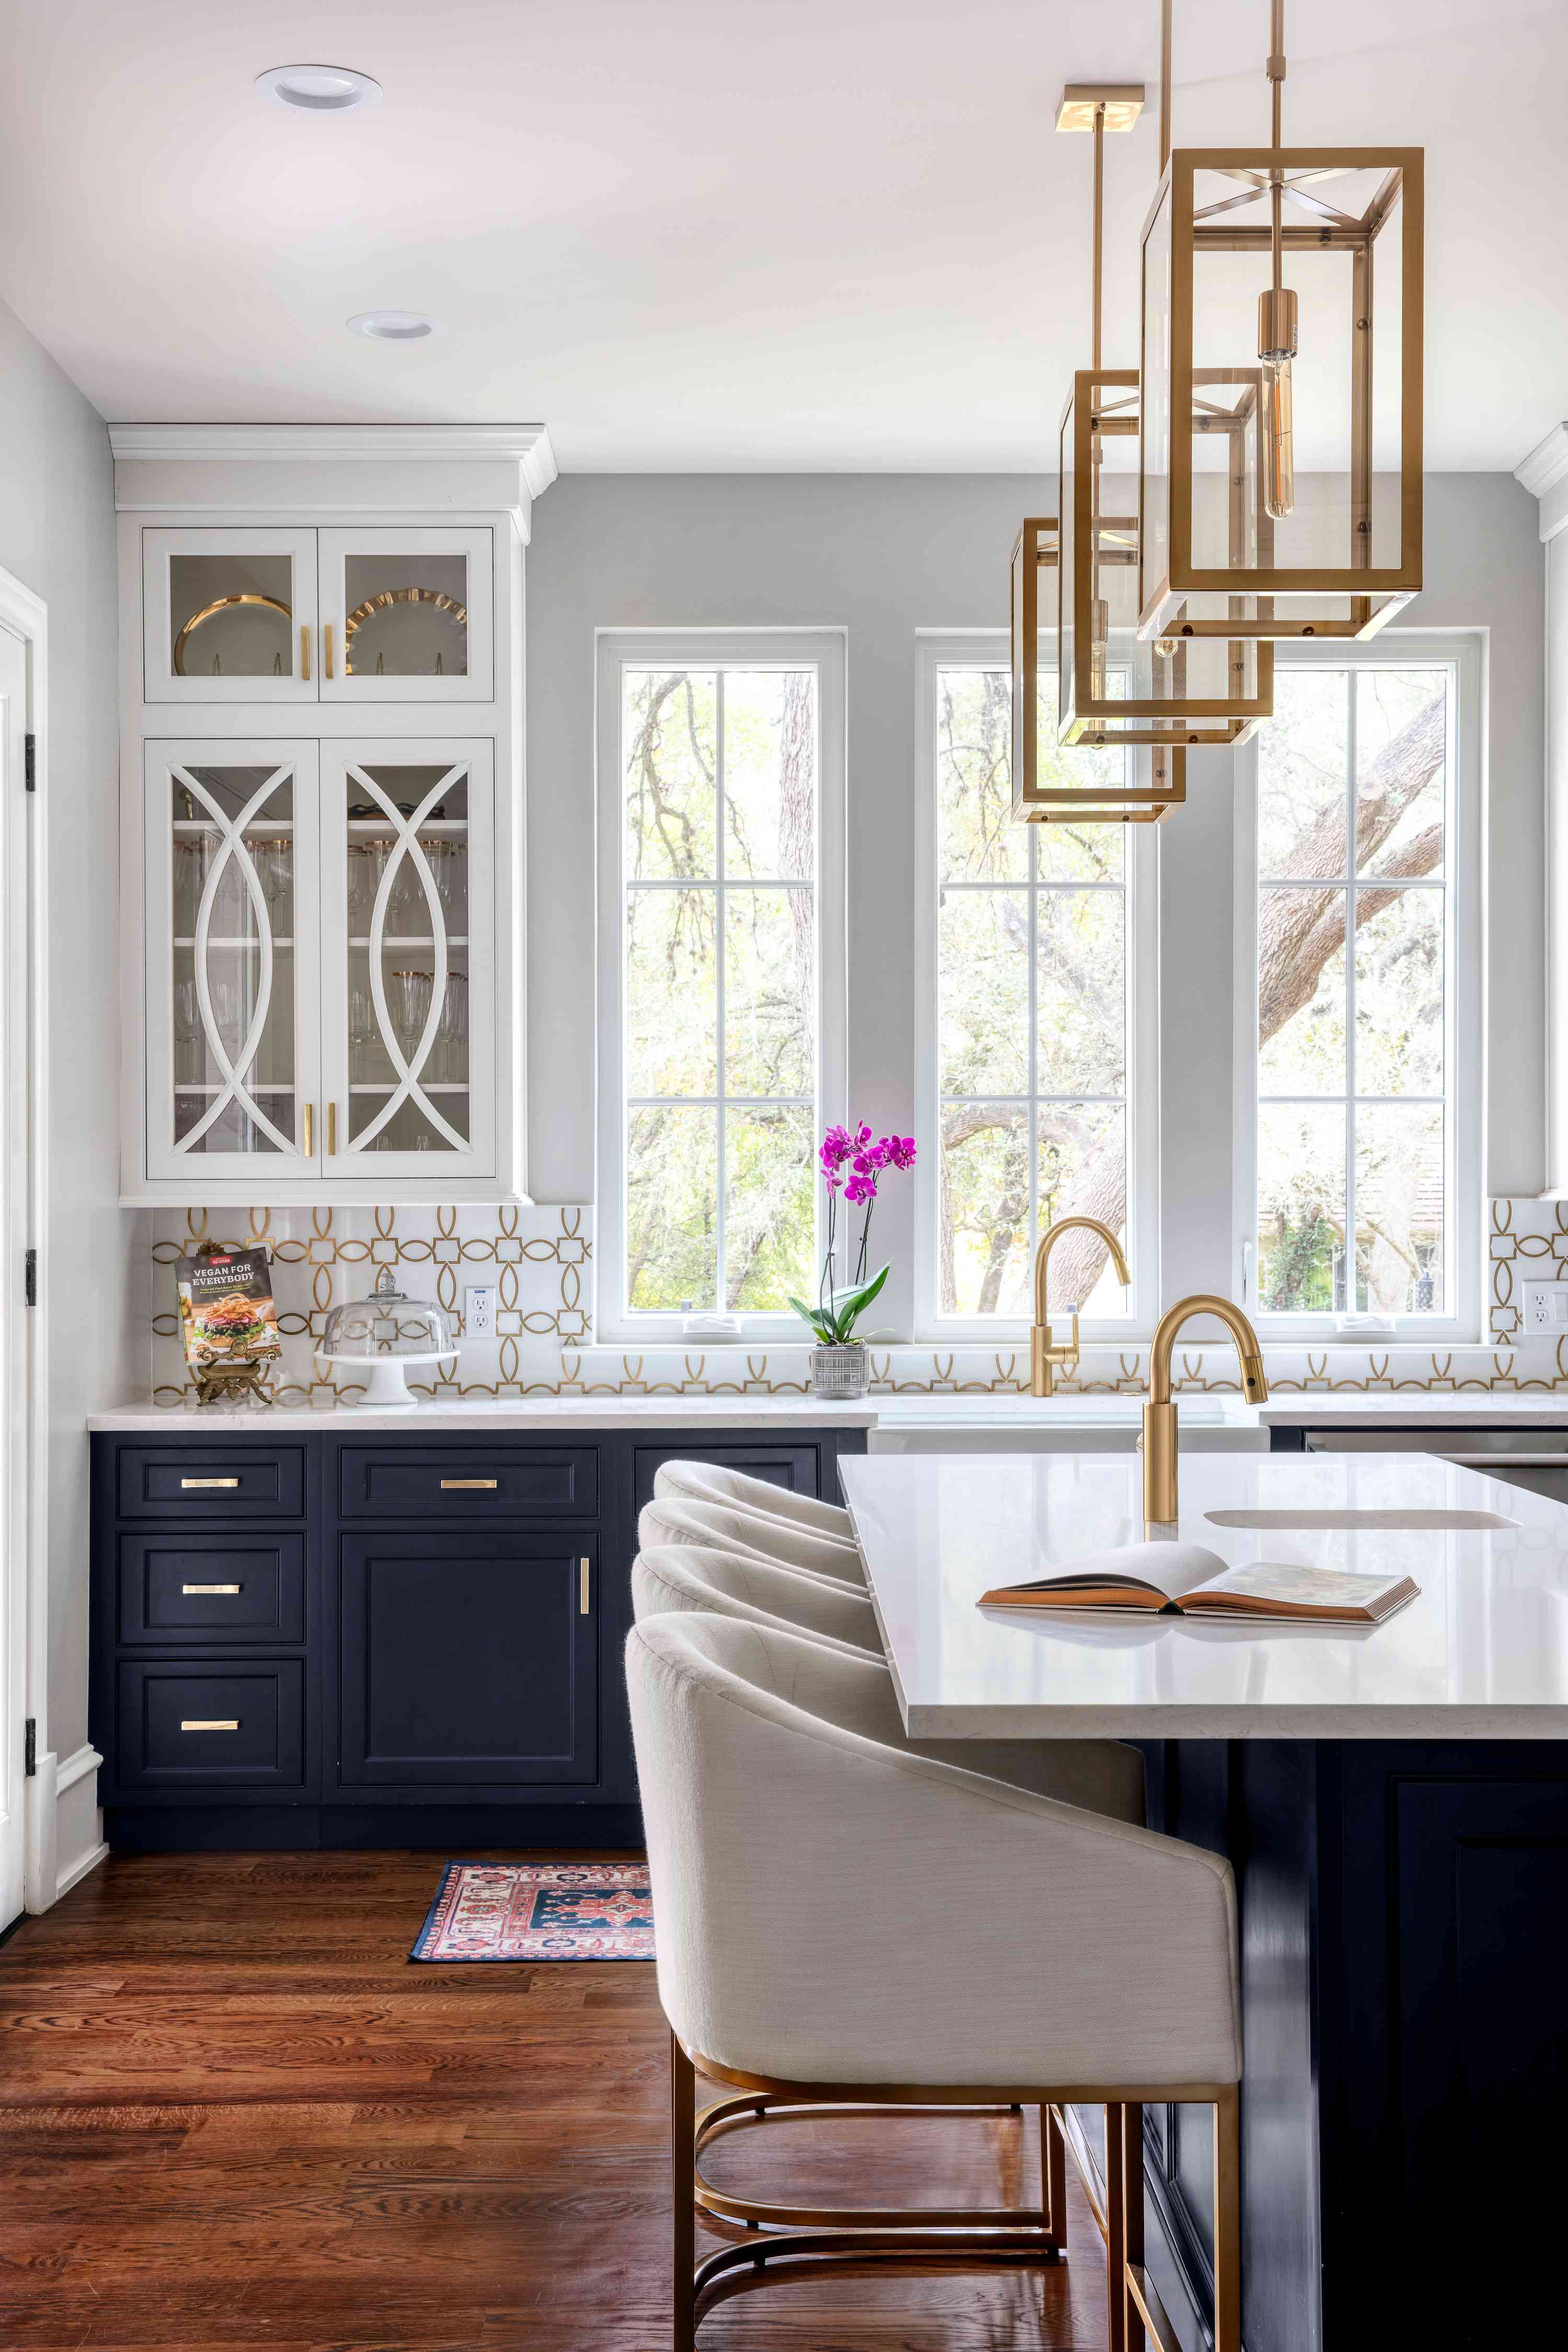 Luxe navy kitchen with gold fixtures.